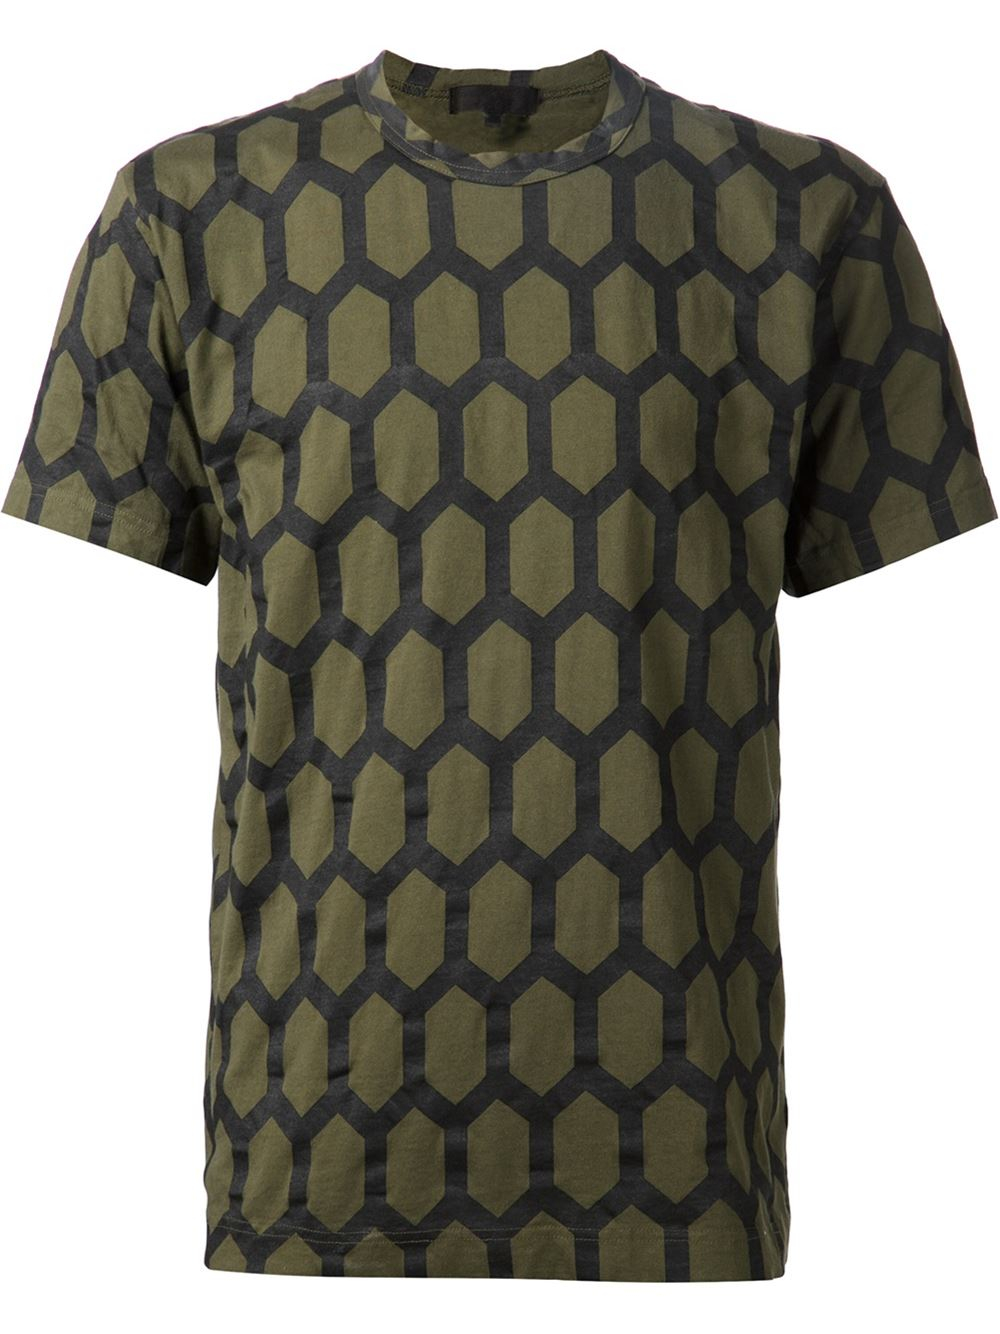 lyst comme des gar ons honeycomb print t shirt in green. Black Bedroom Furniture Sets. Home Design Ideas